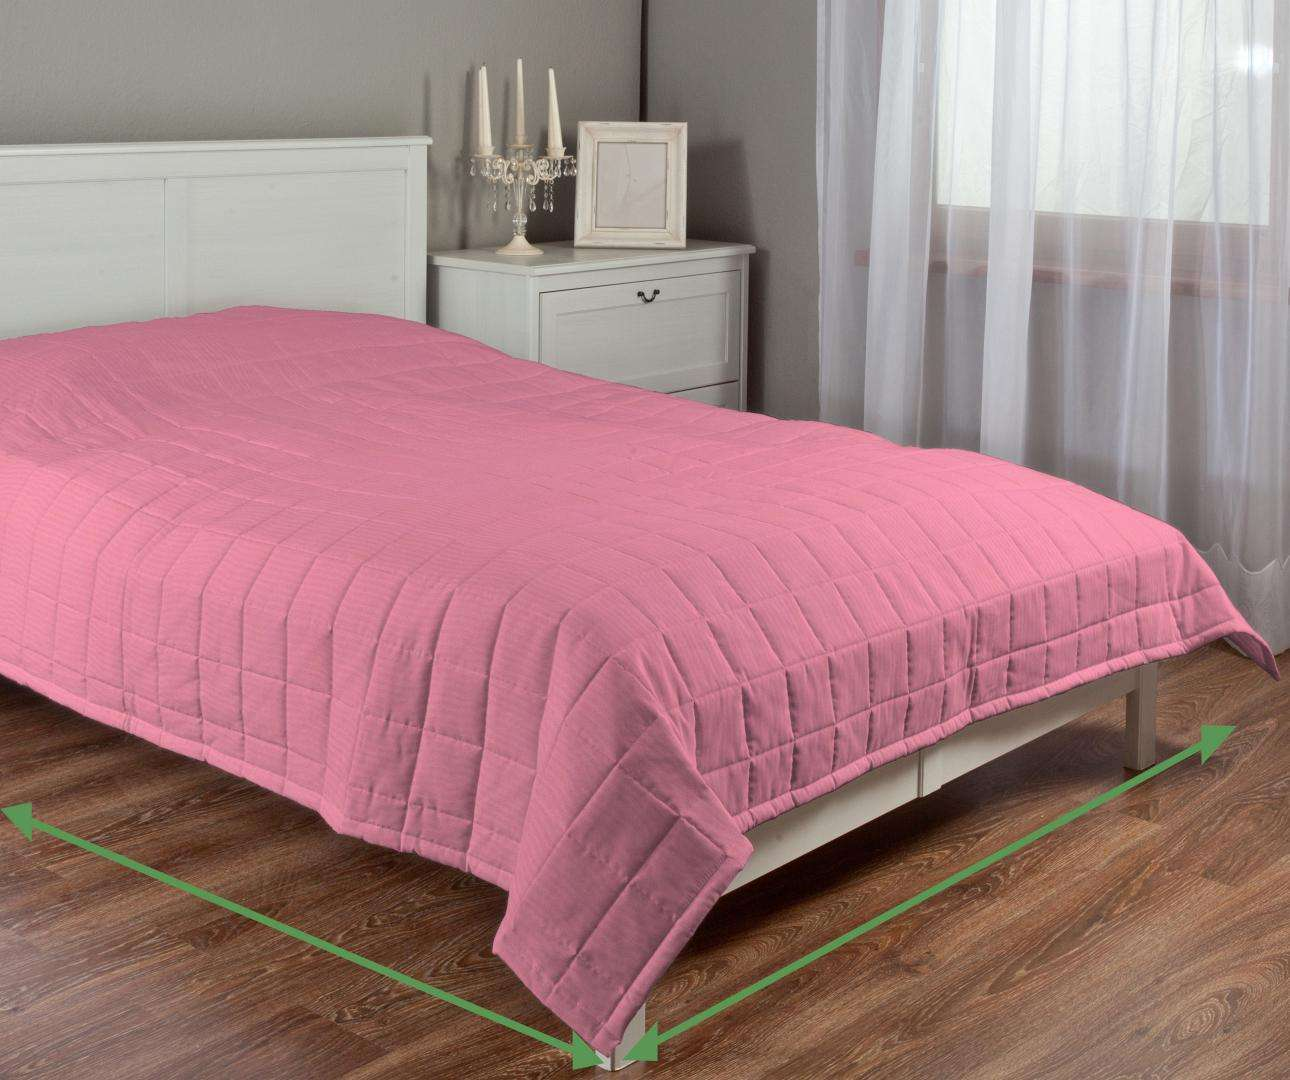 Quilted throw (check quilt pattern) in collection Milano, fabric: 150-22